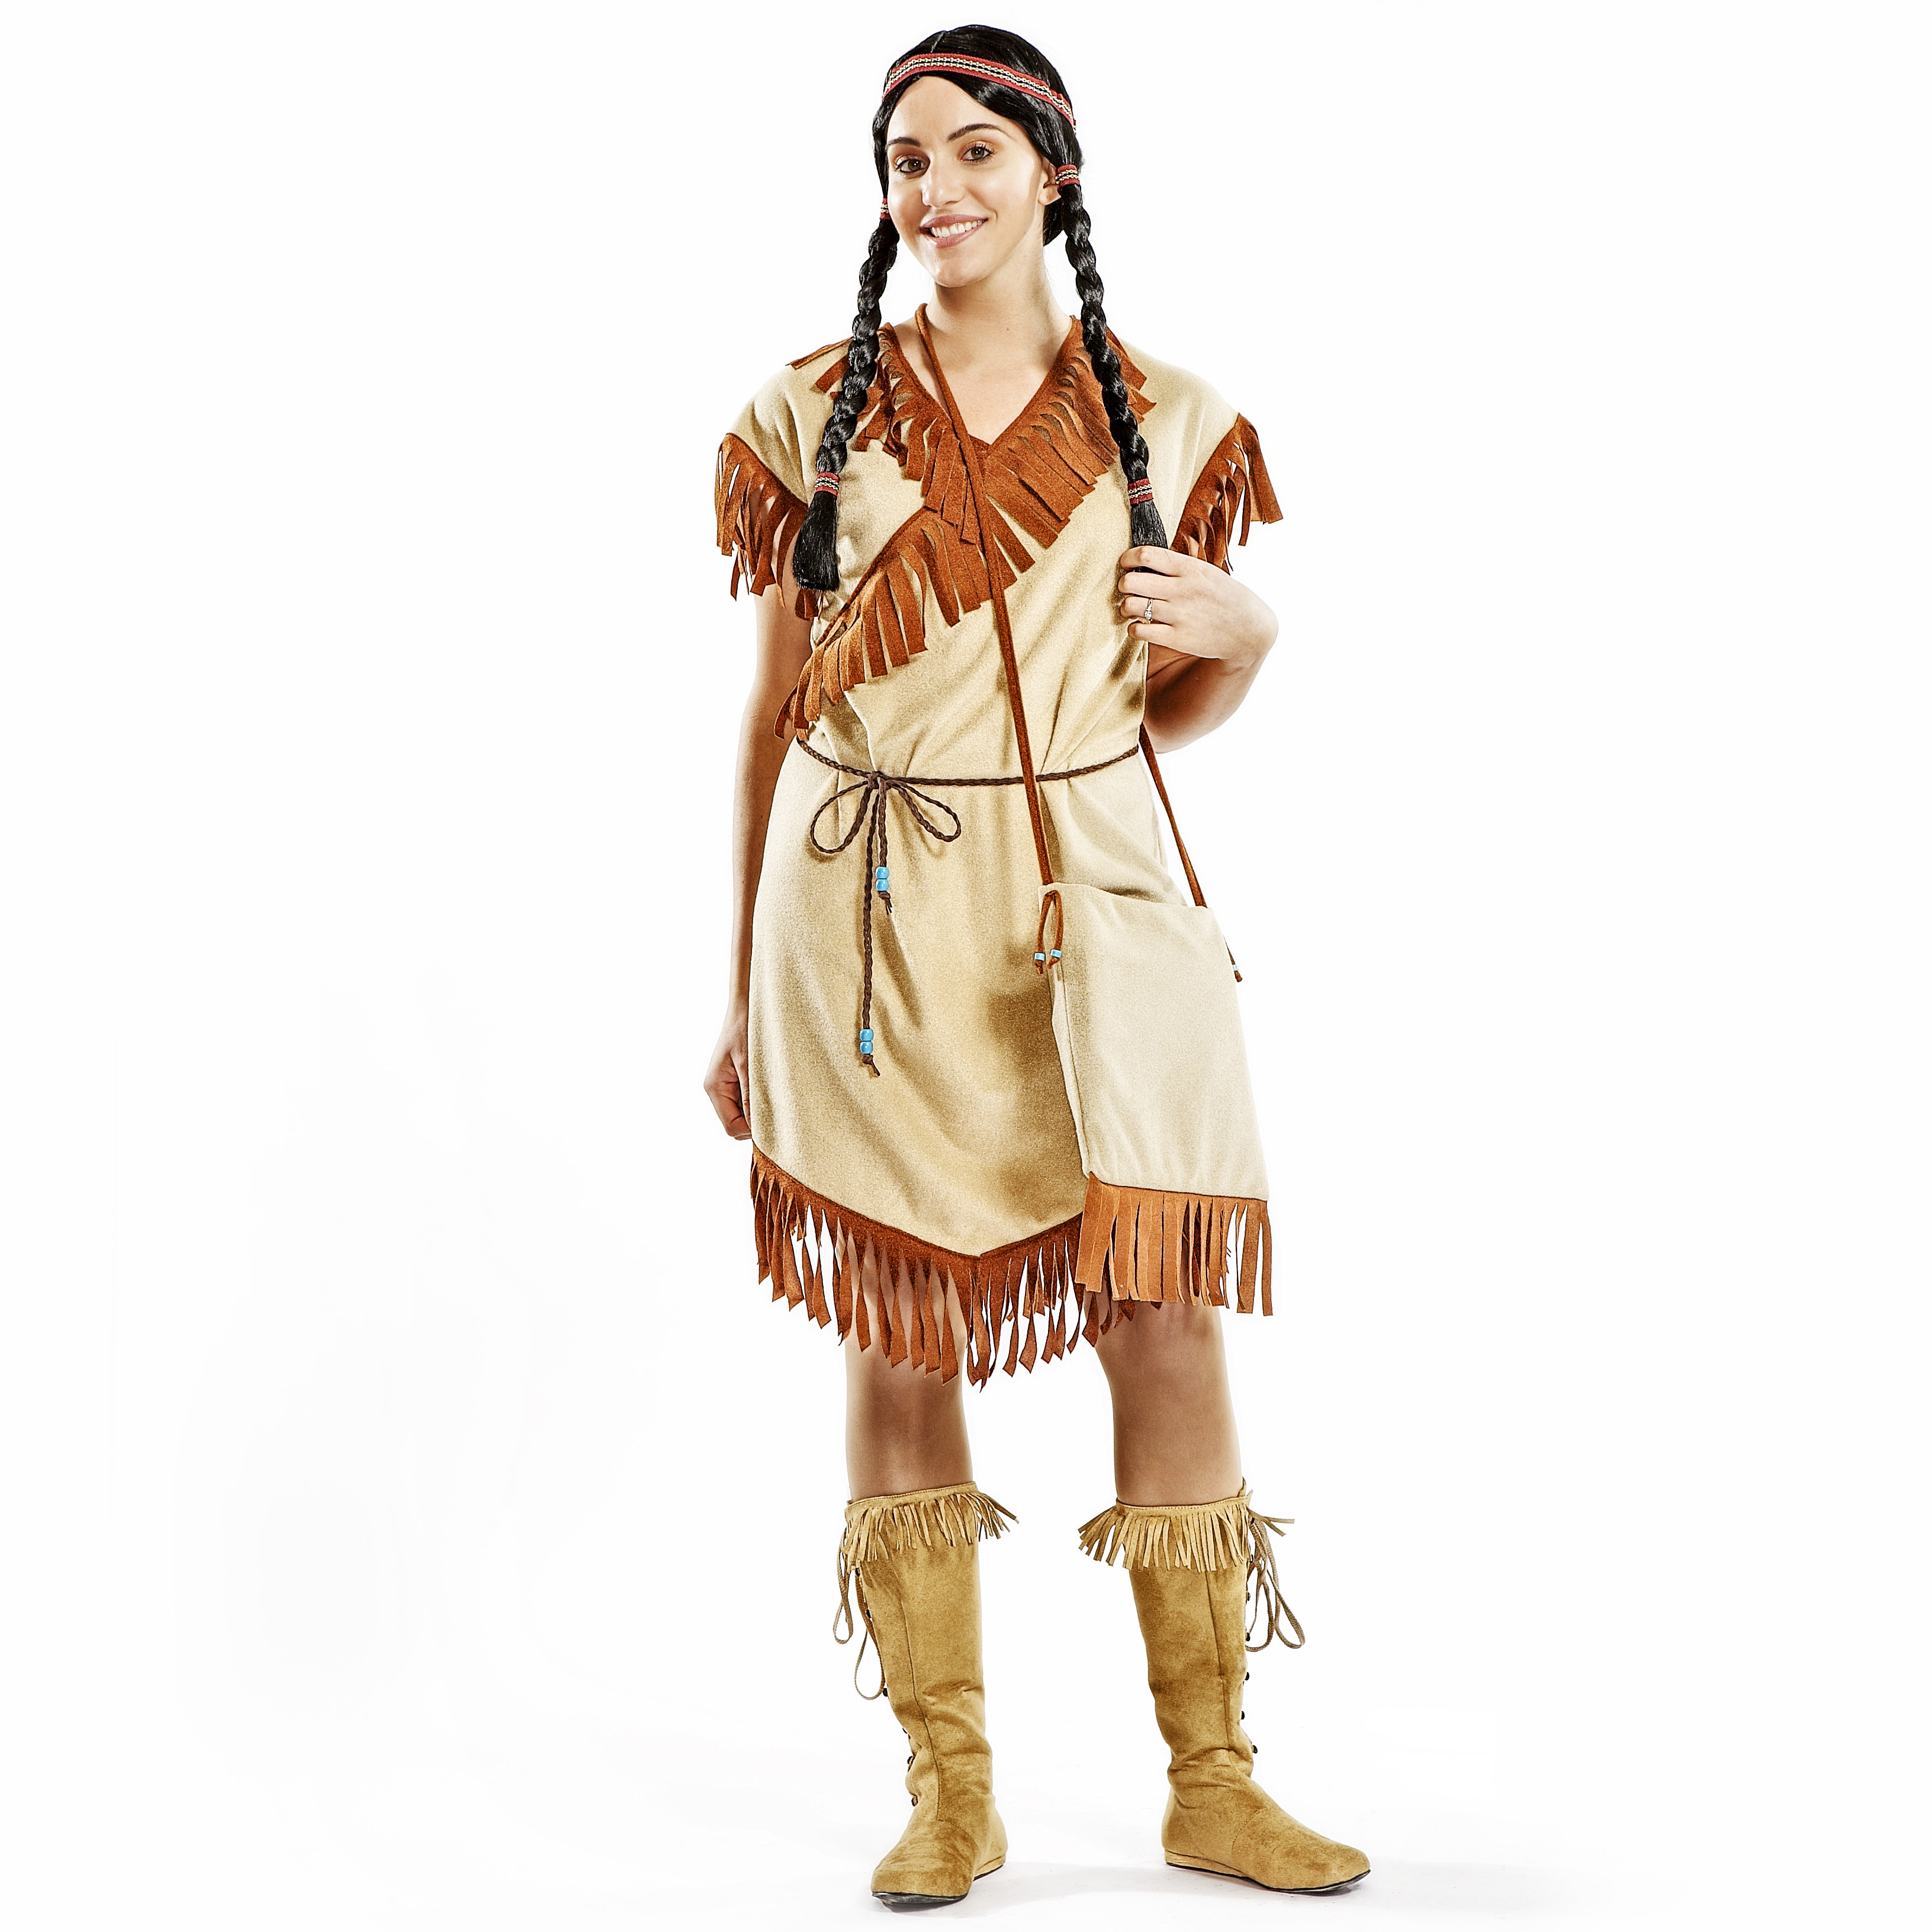 john smith pocahontas costumes adults. Black Bedroom Furniture Sets. Home Design Ideas